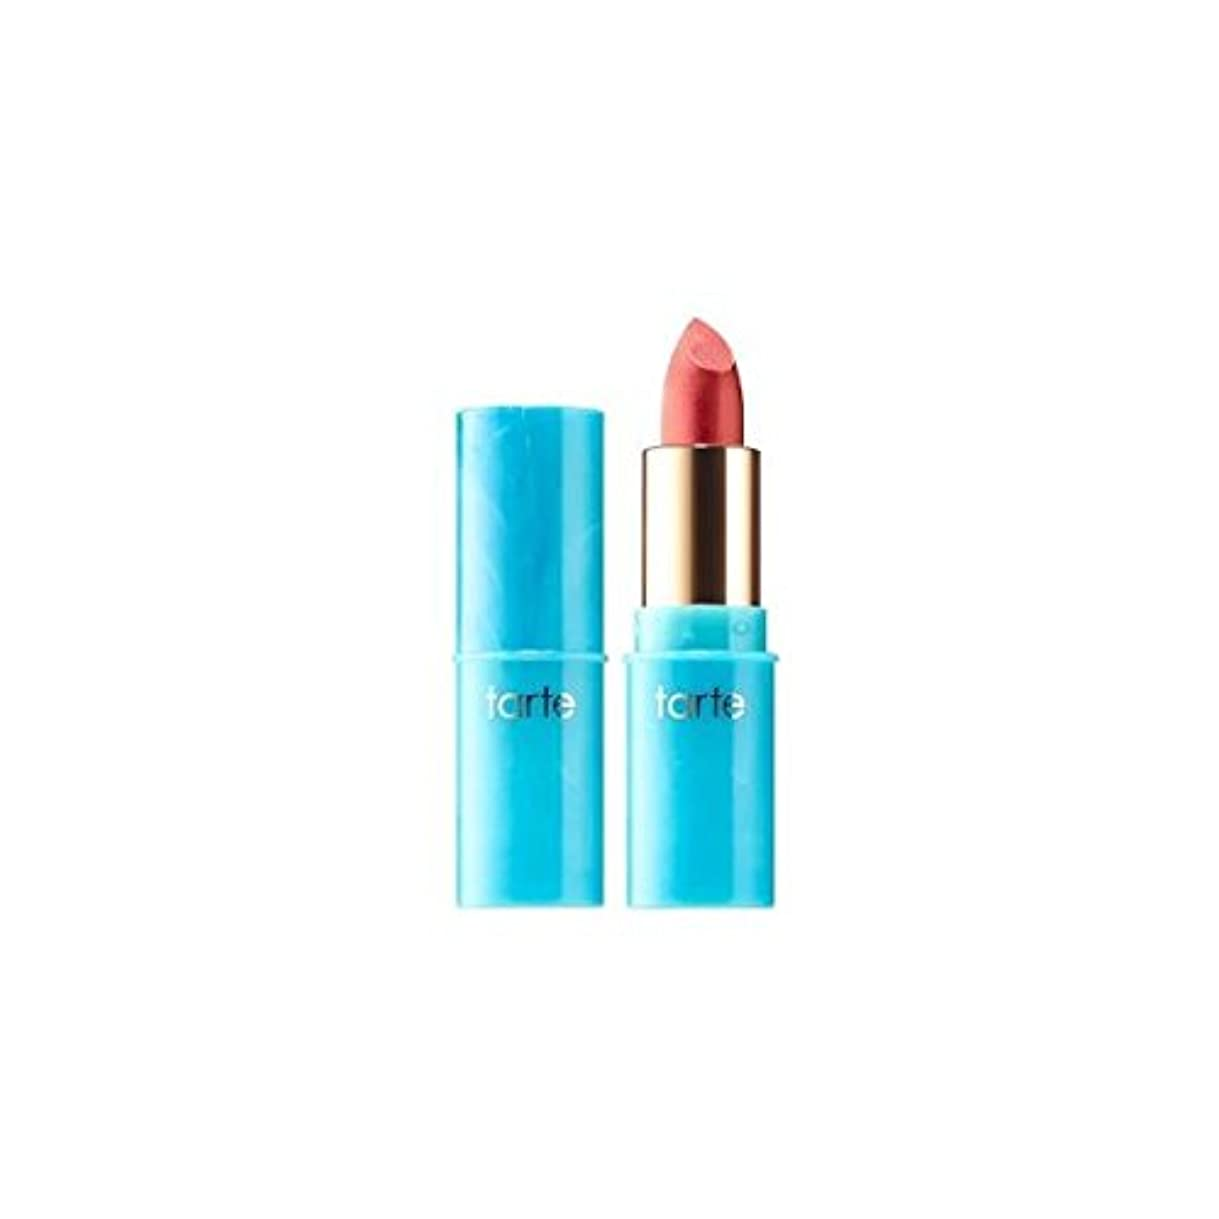 囲まれた港語tarteタルト リップ Color Splash Lipstick - Rainforest of the Sea Collection Metallic finish